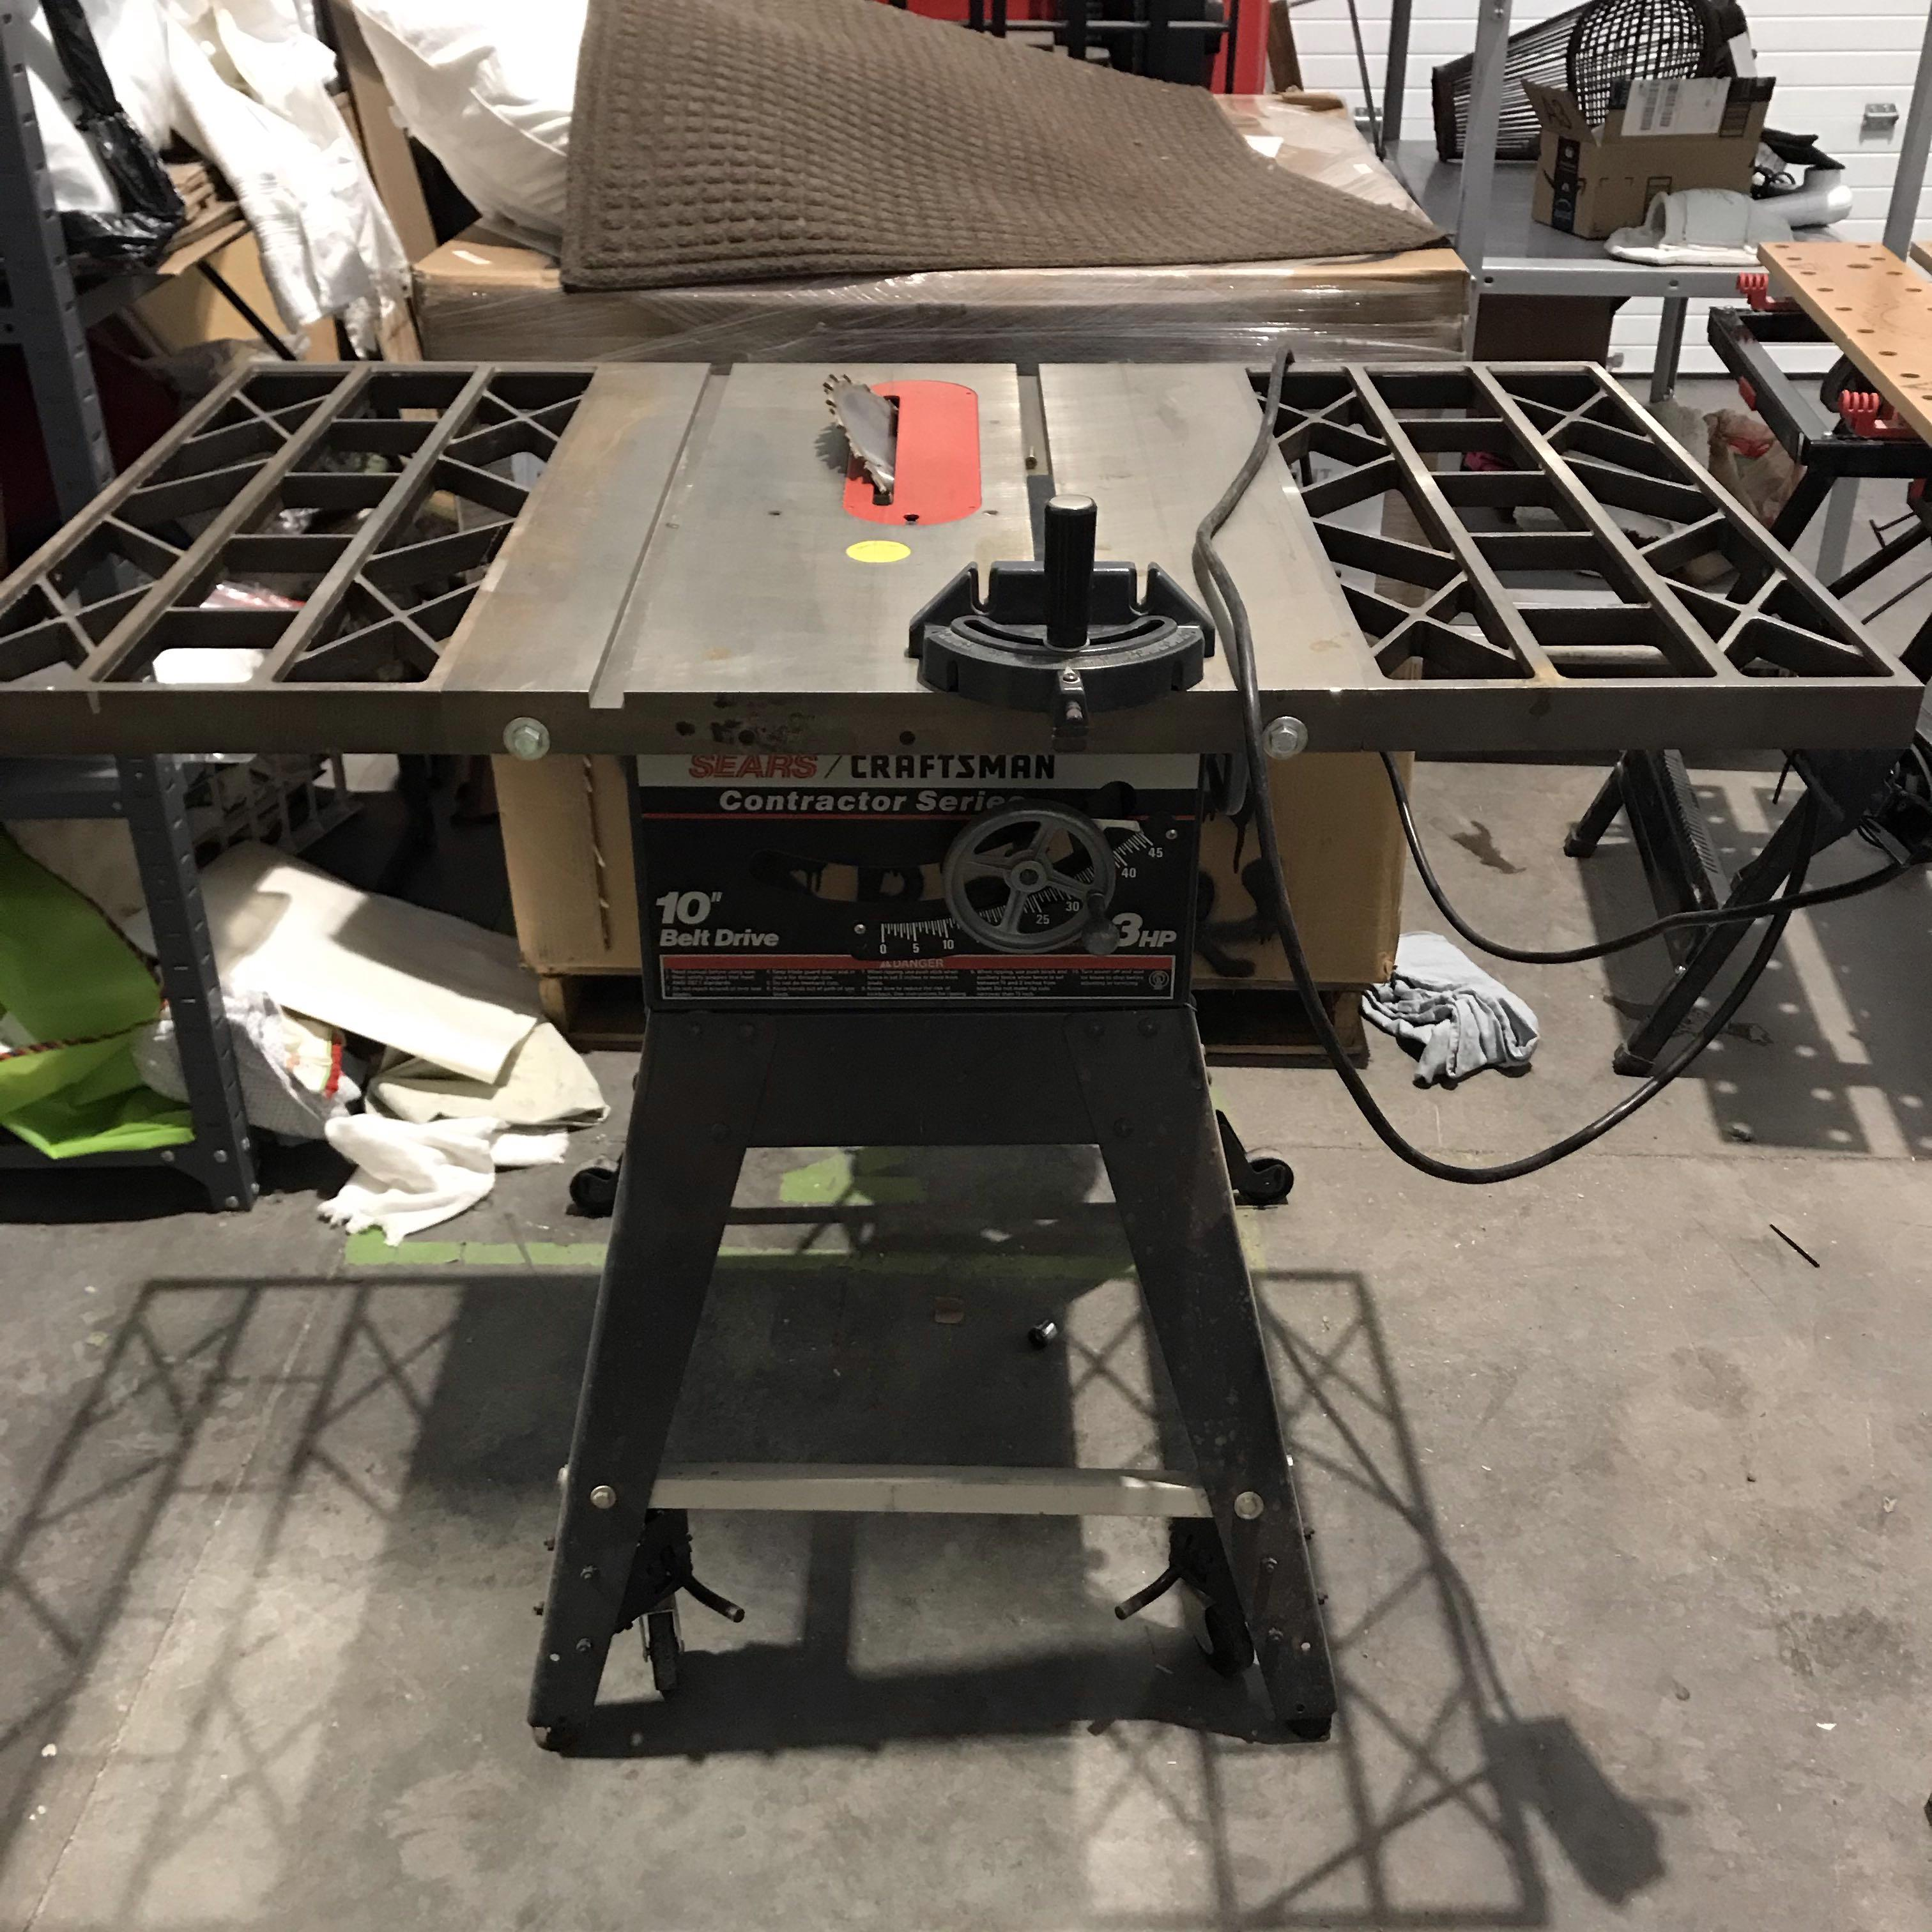 "Sears Craftsman Contractor 10"" Table Saw"